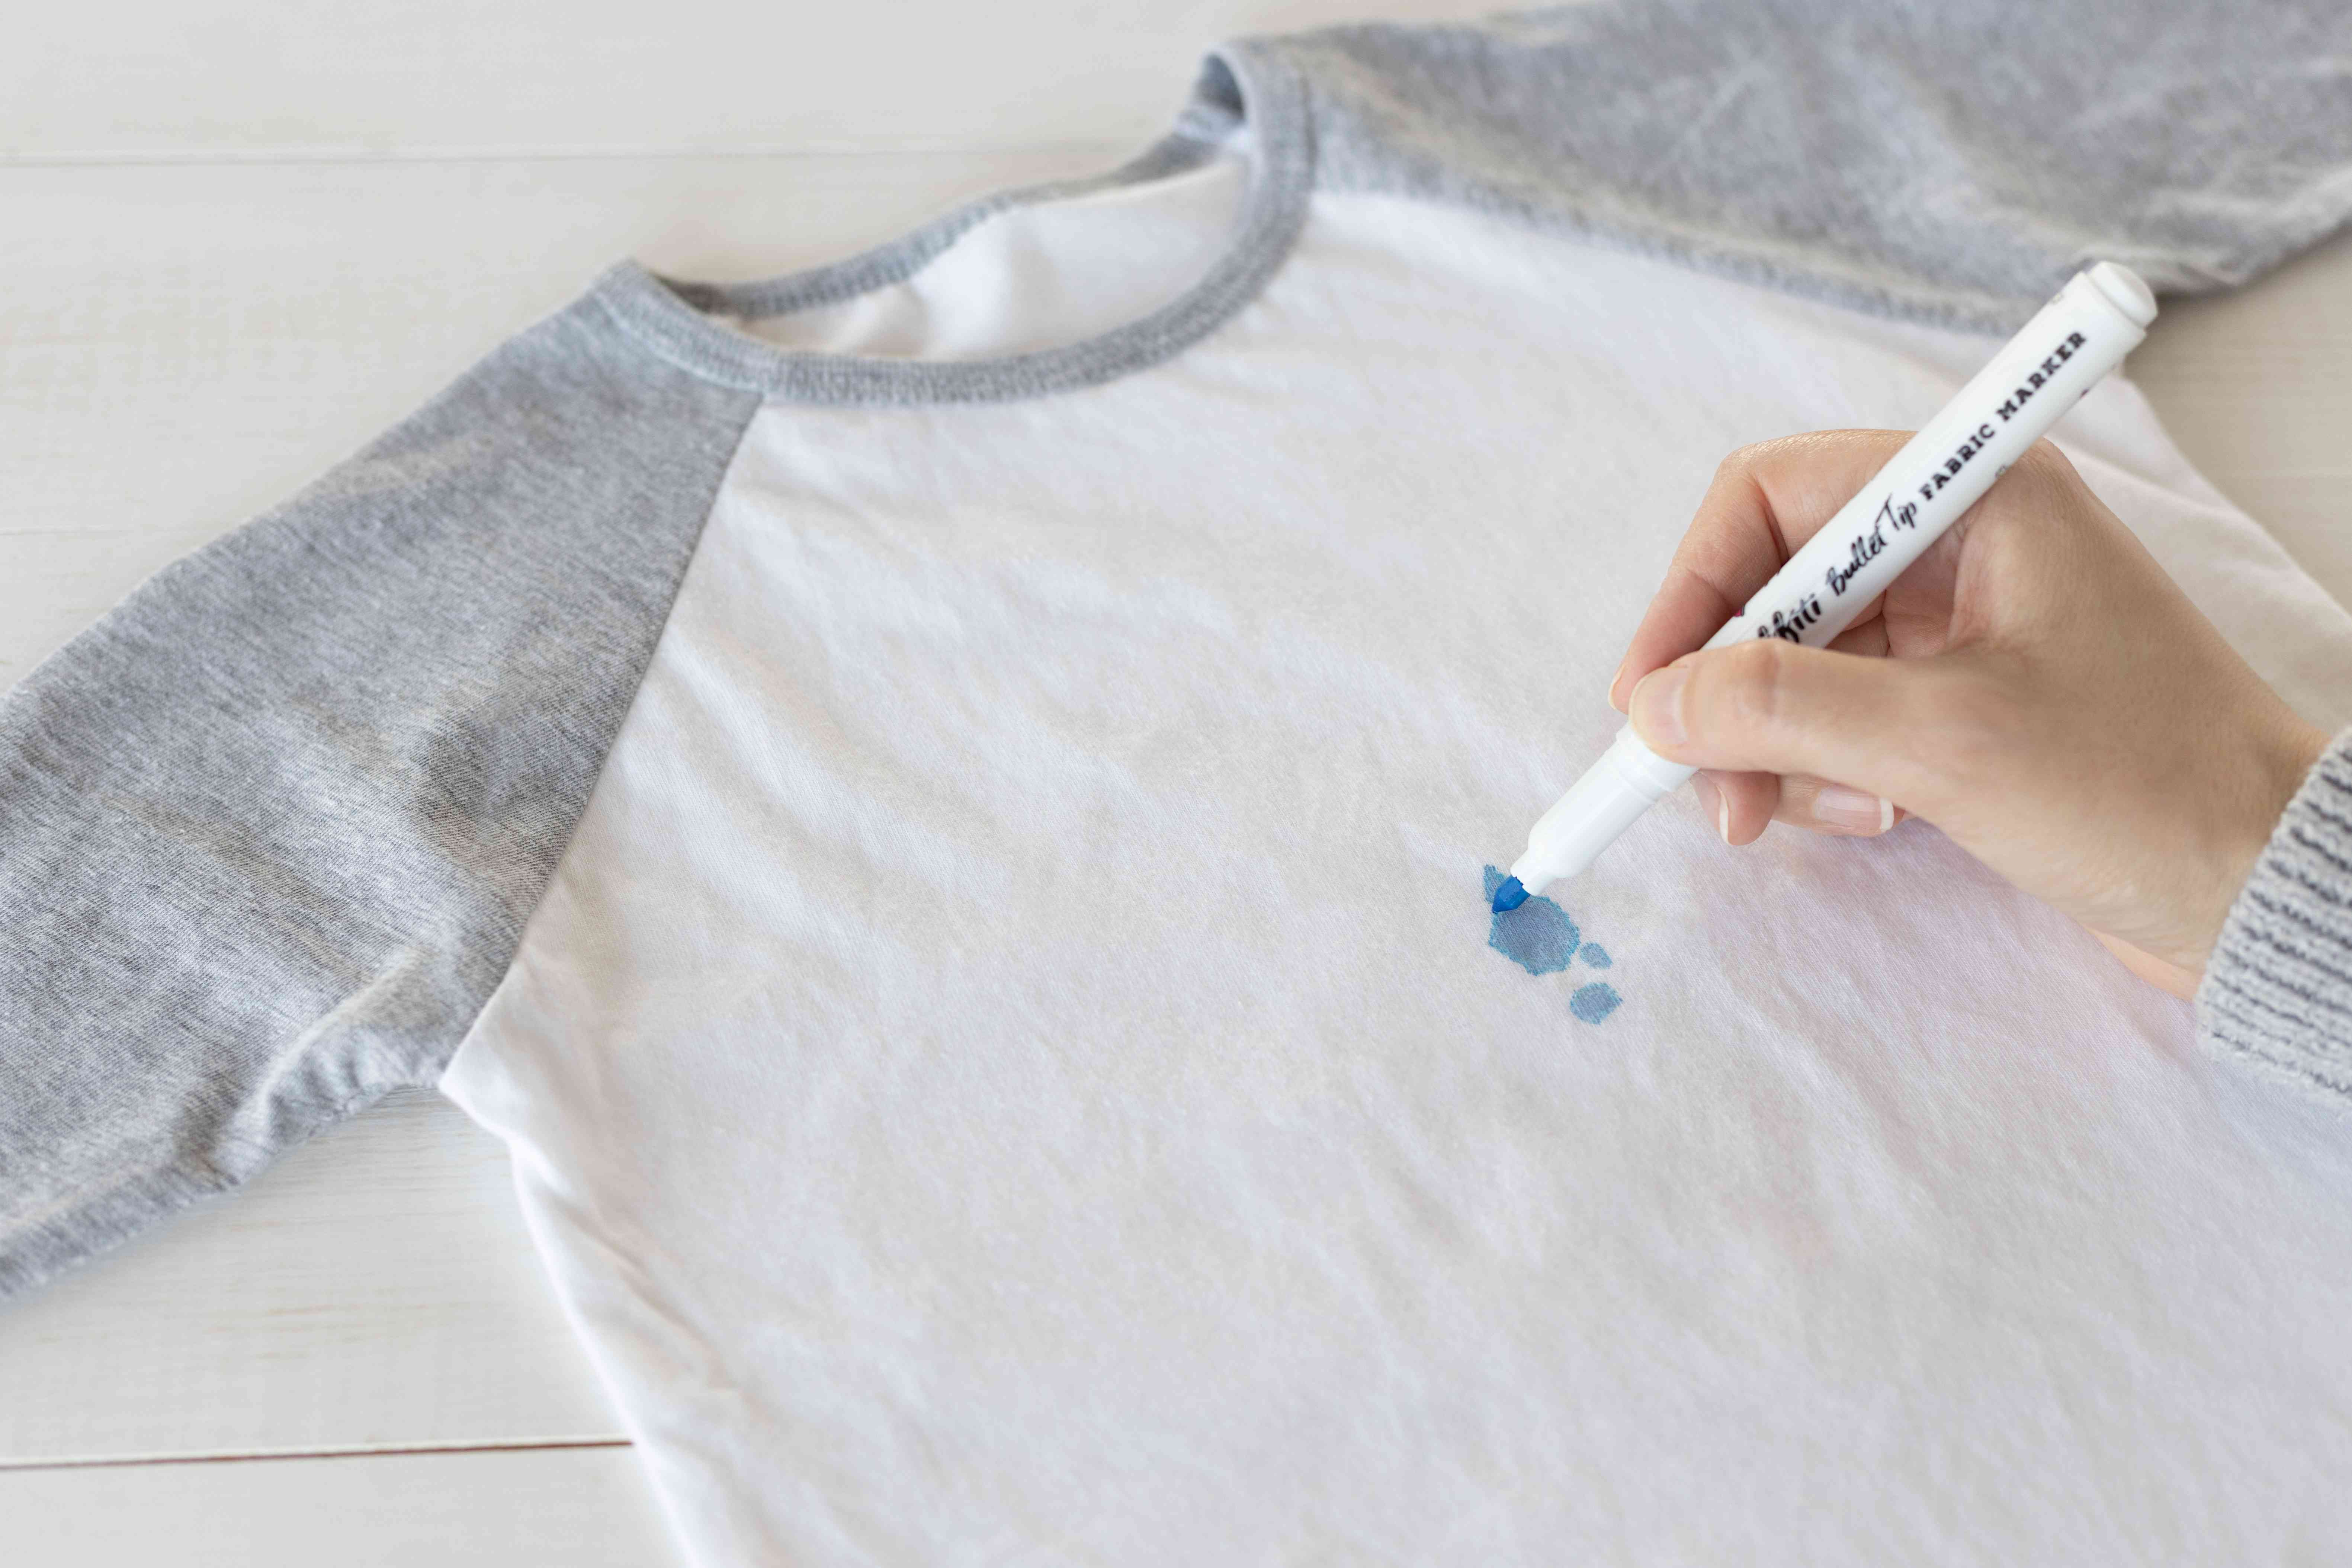 White and gray shirt with blue stain colored in with fabric marker